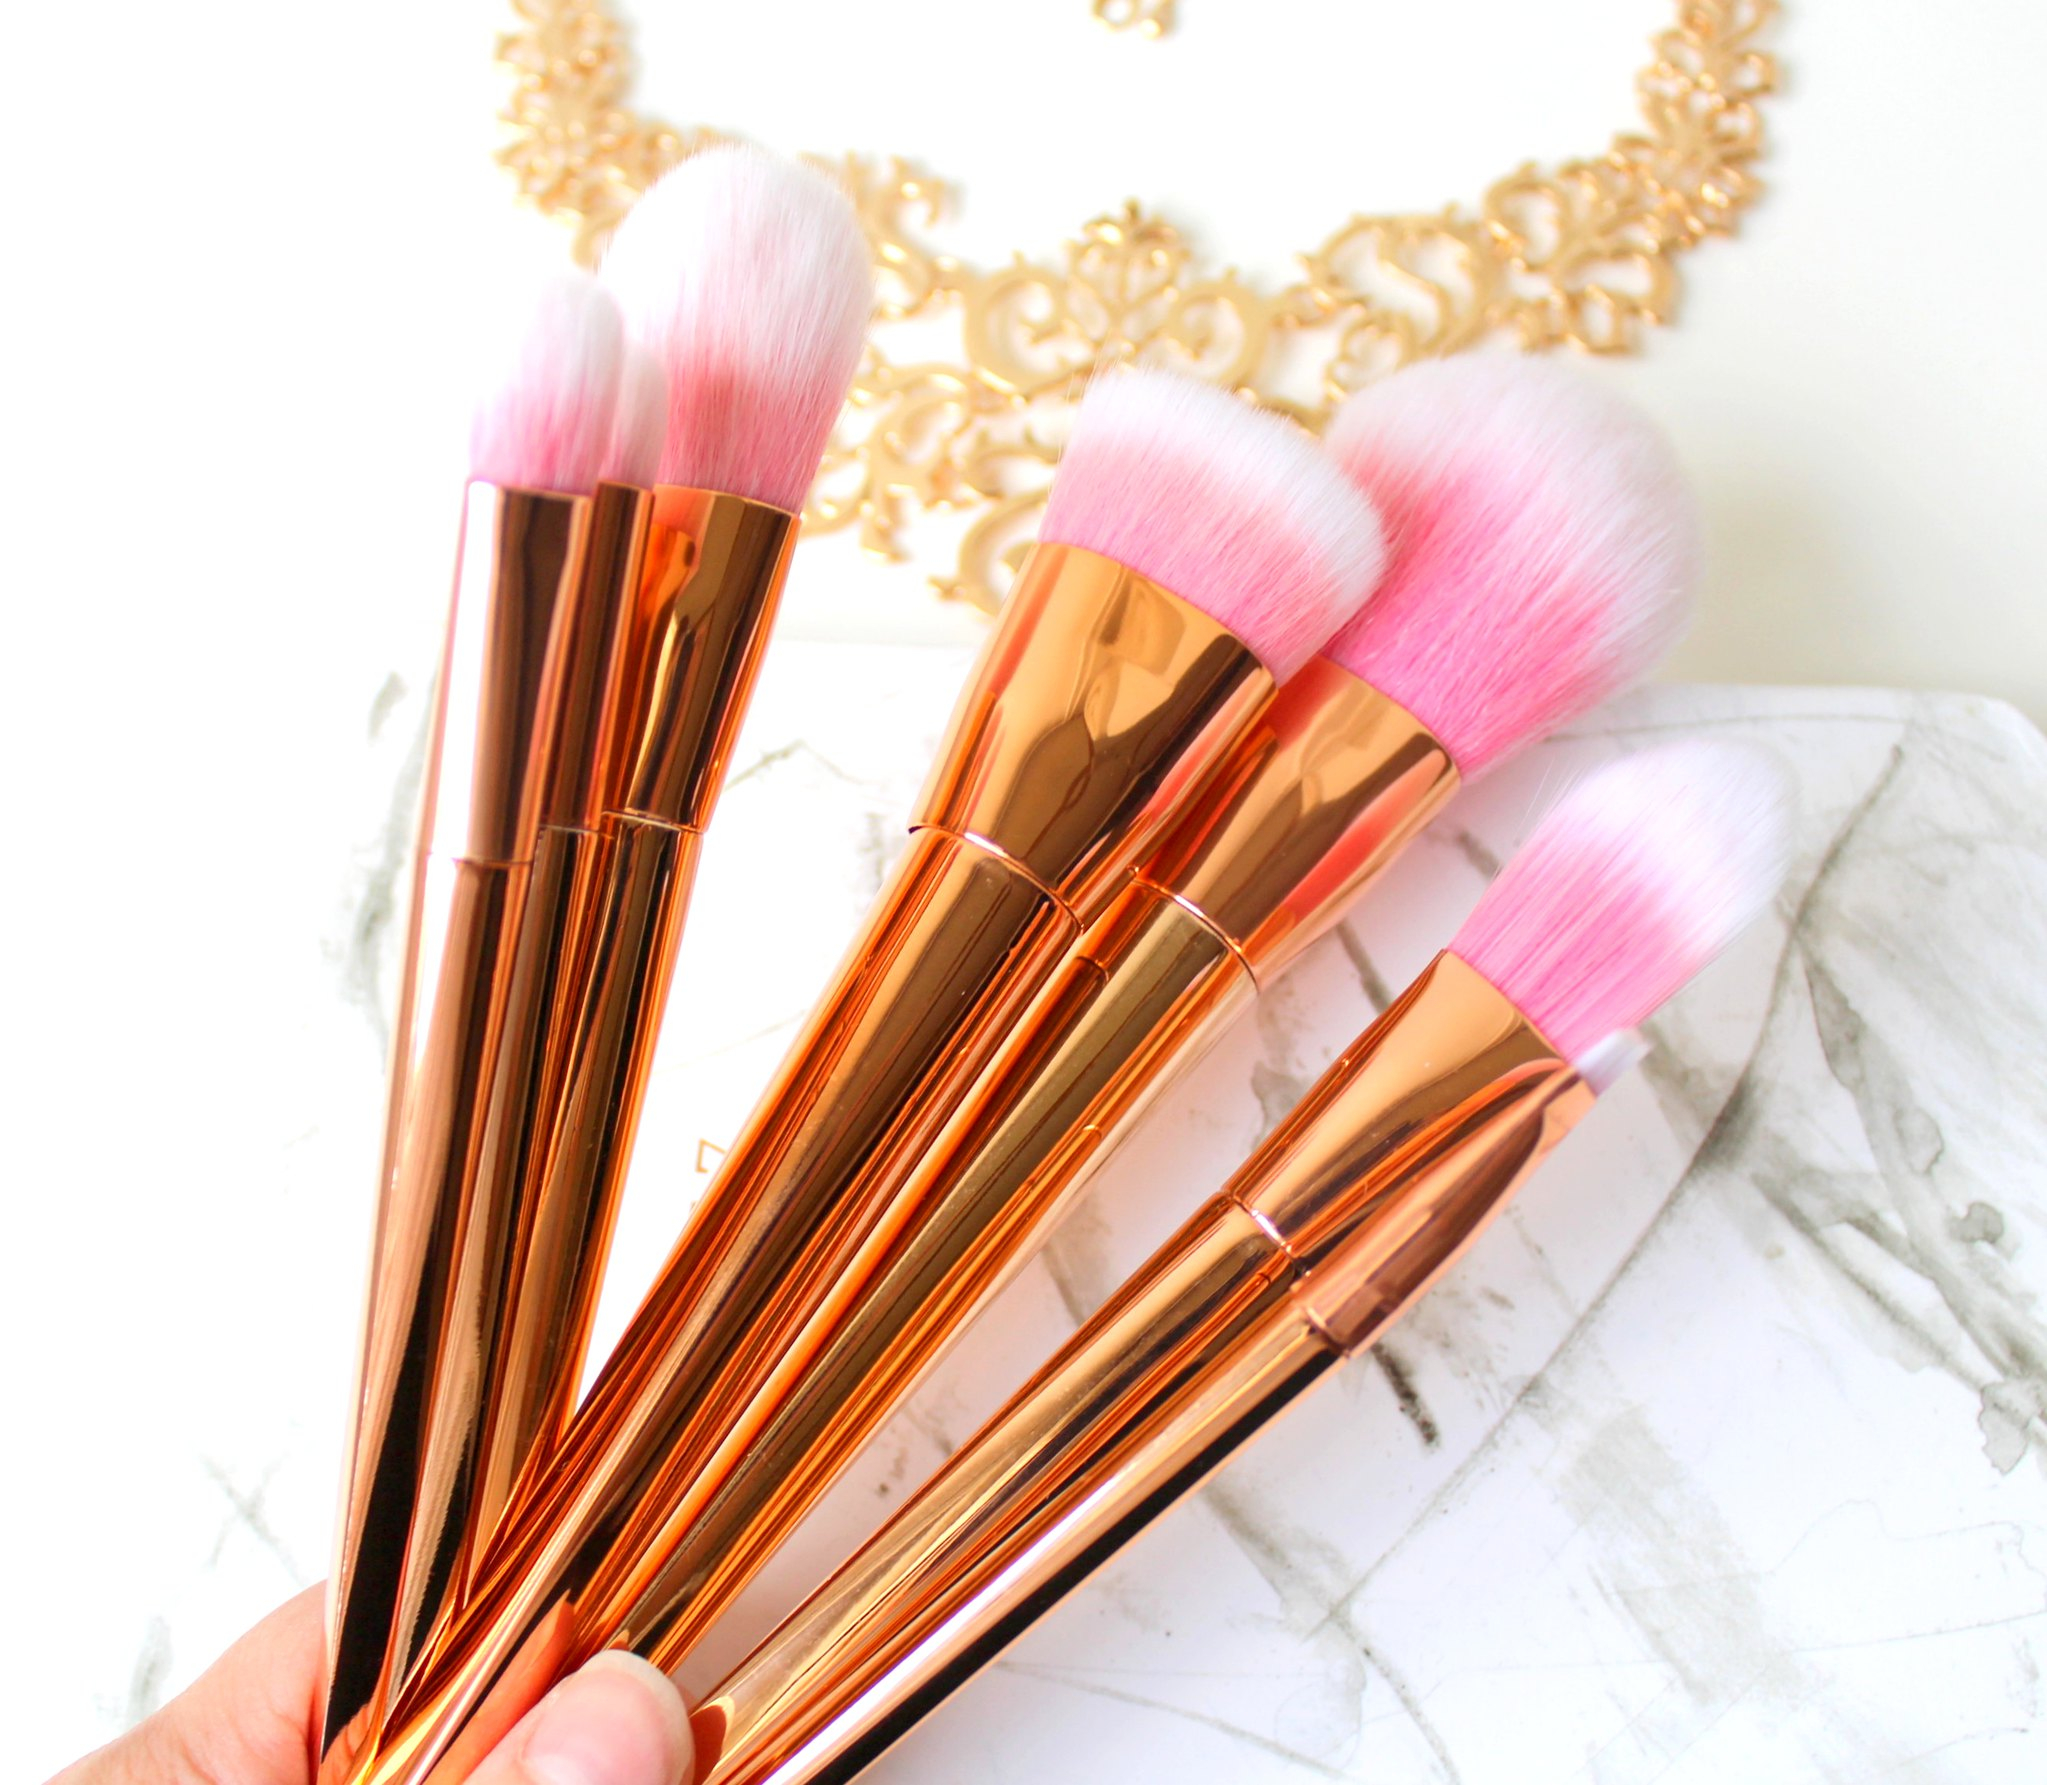 Rosegold make up brushes